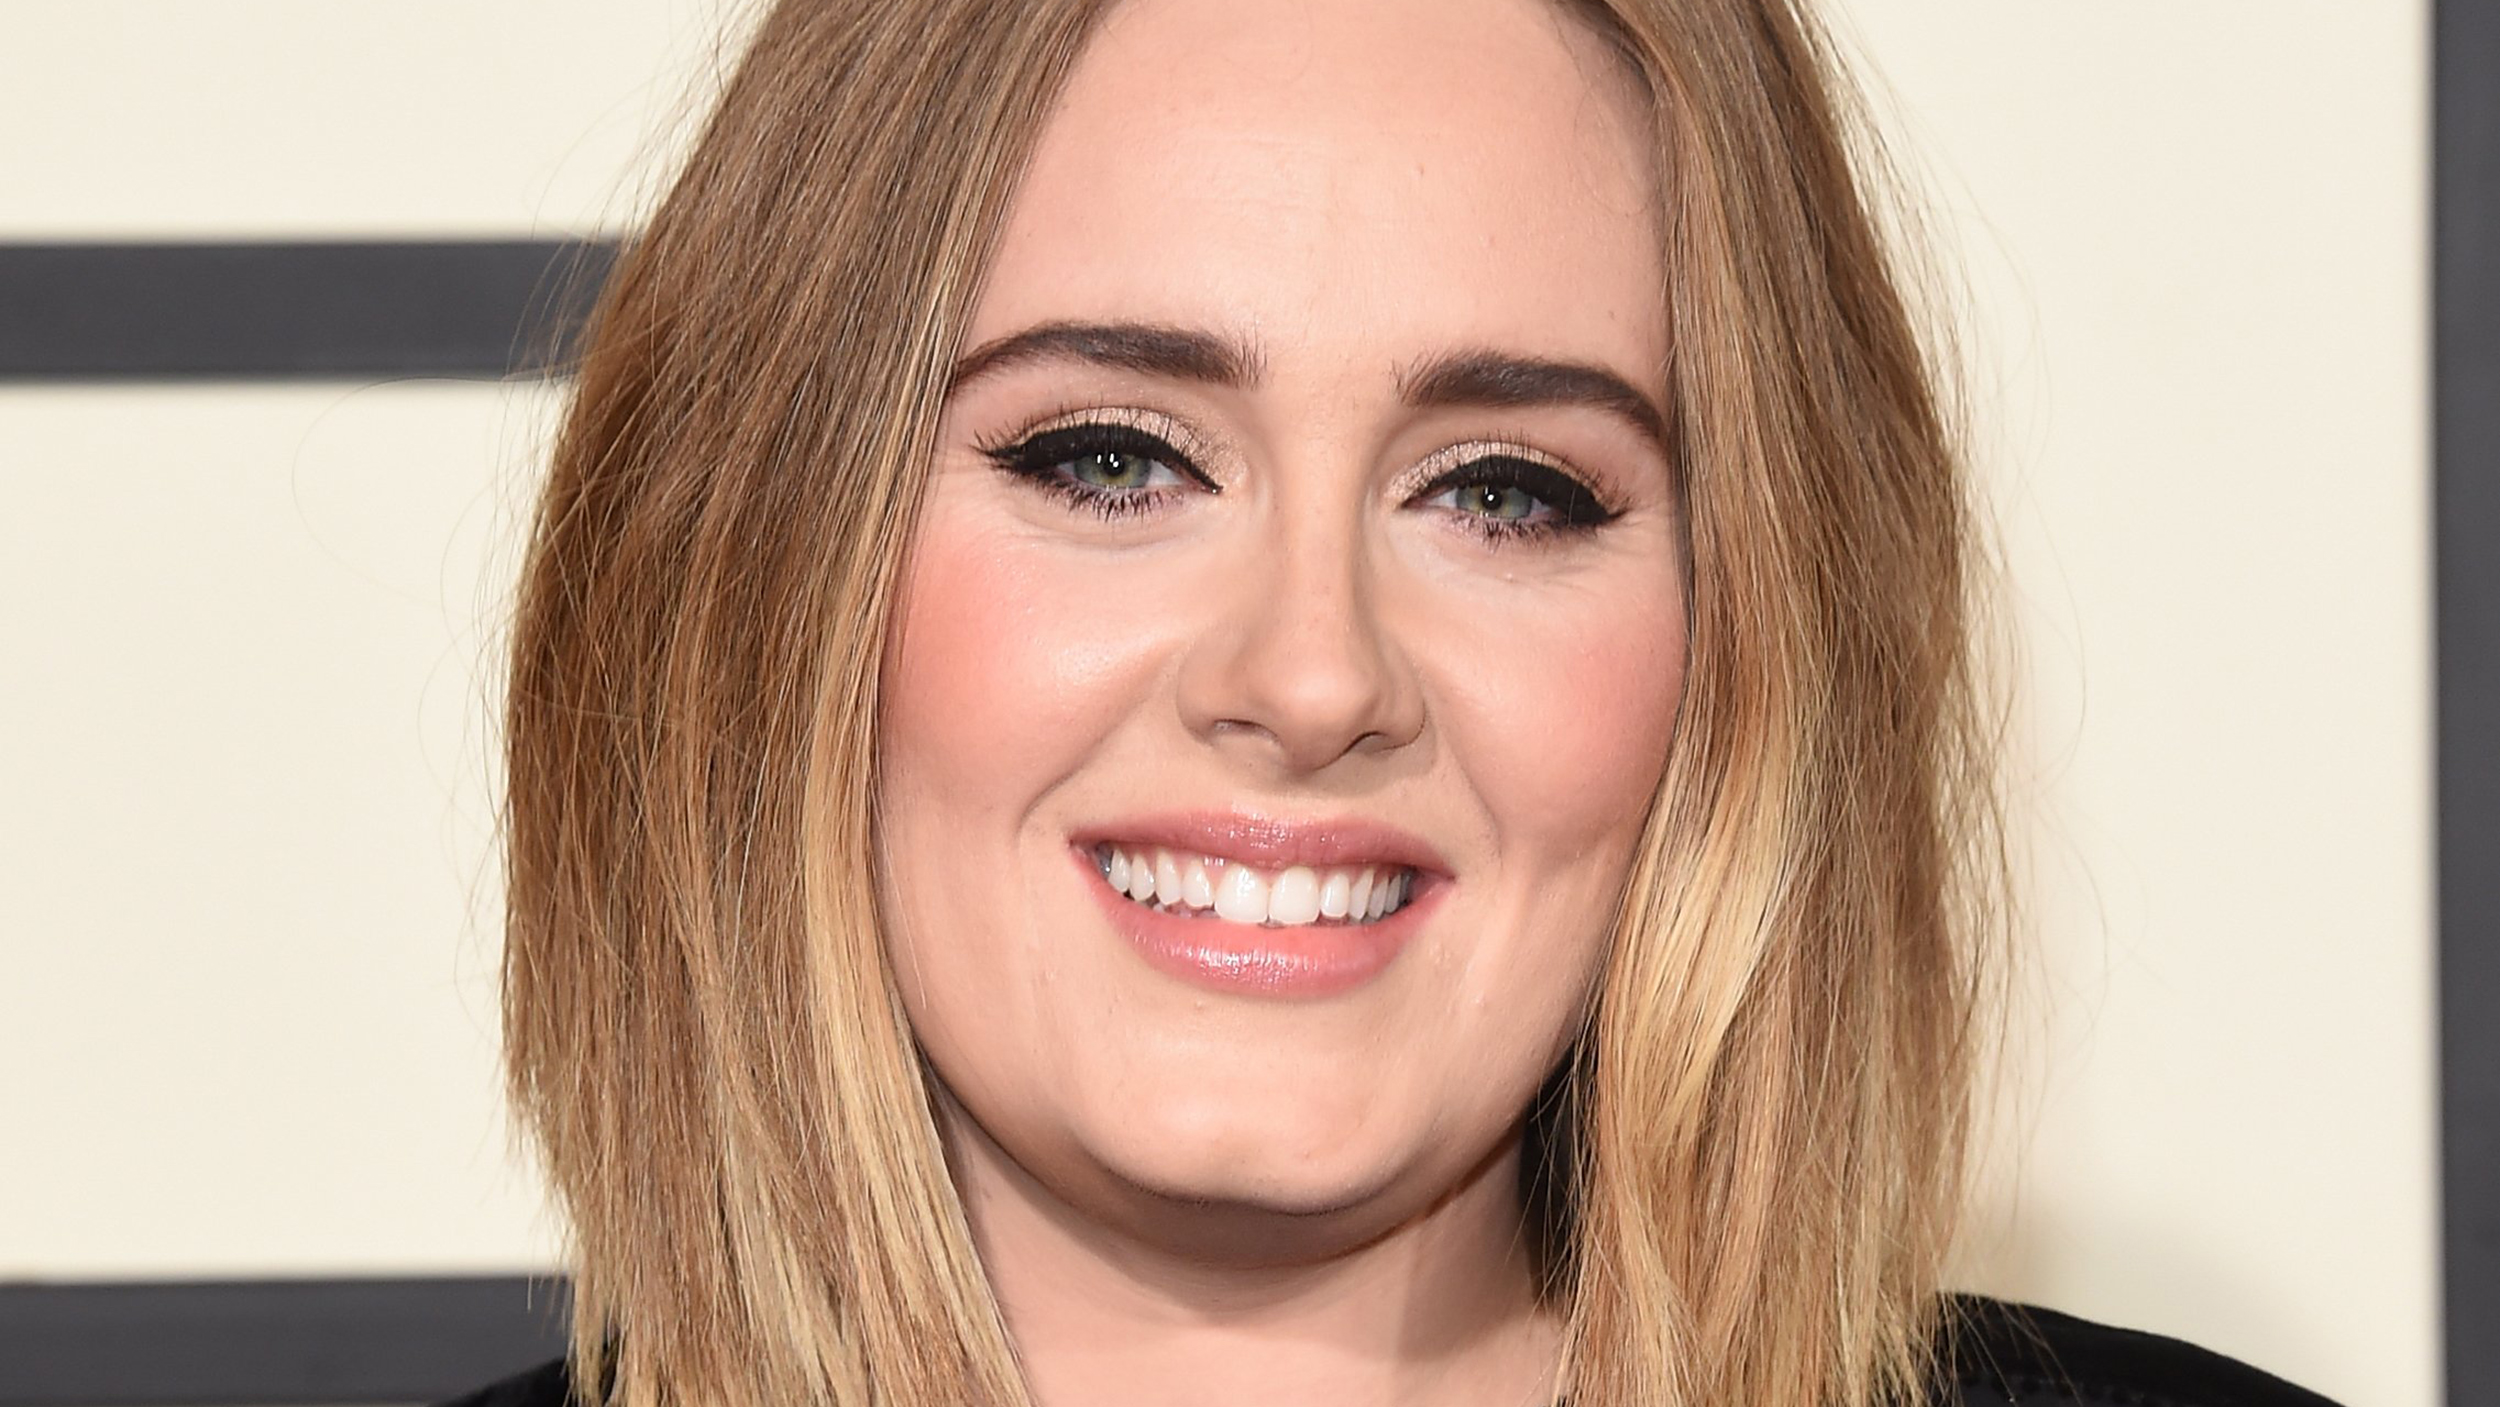 Adele Shares Hilarious New Photo From Her Gym Workout